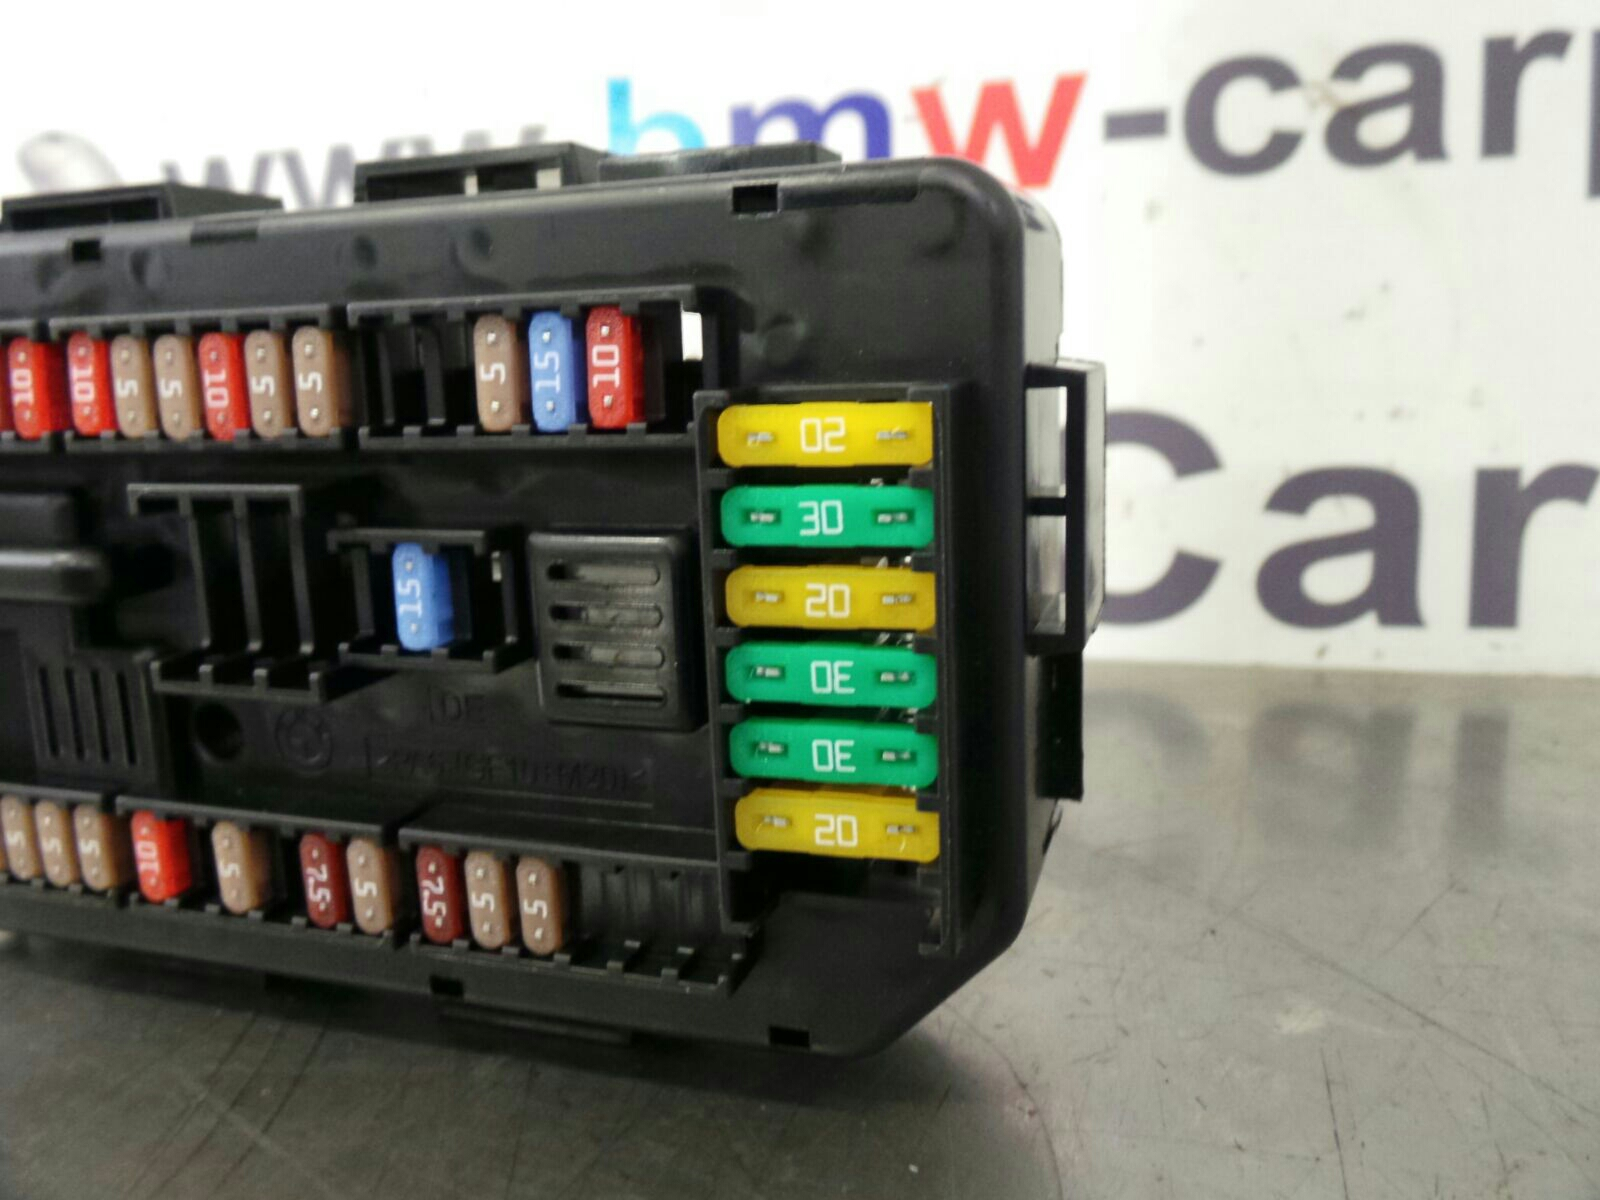 F20 Fuse Box Wire Data Schema 28kb Function Christmas Lamp Electronic Circuits And Diagram Bmw 1 Series 9224866 9389068 Breaking For Used Rh Carparts Co Uk